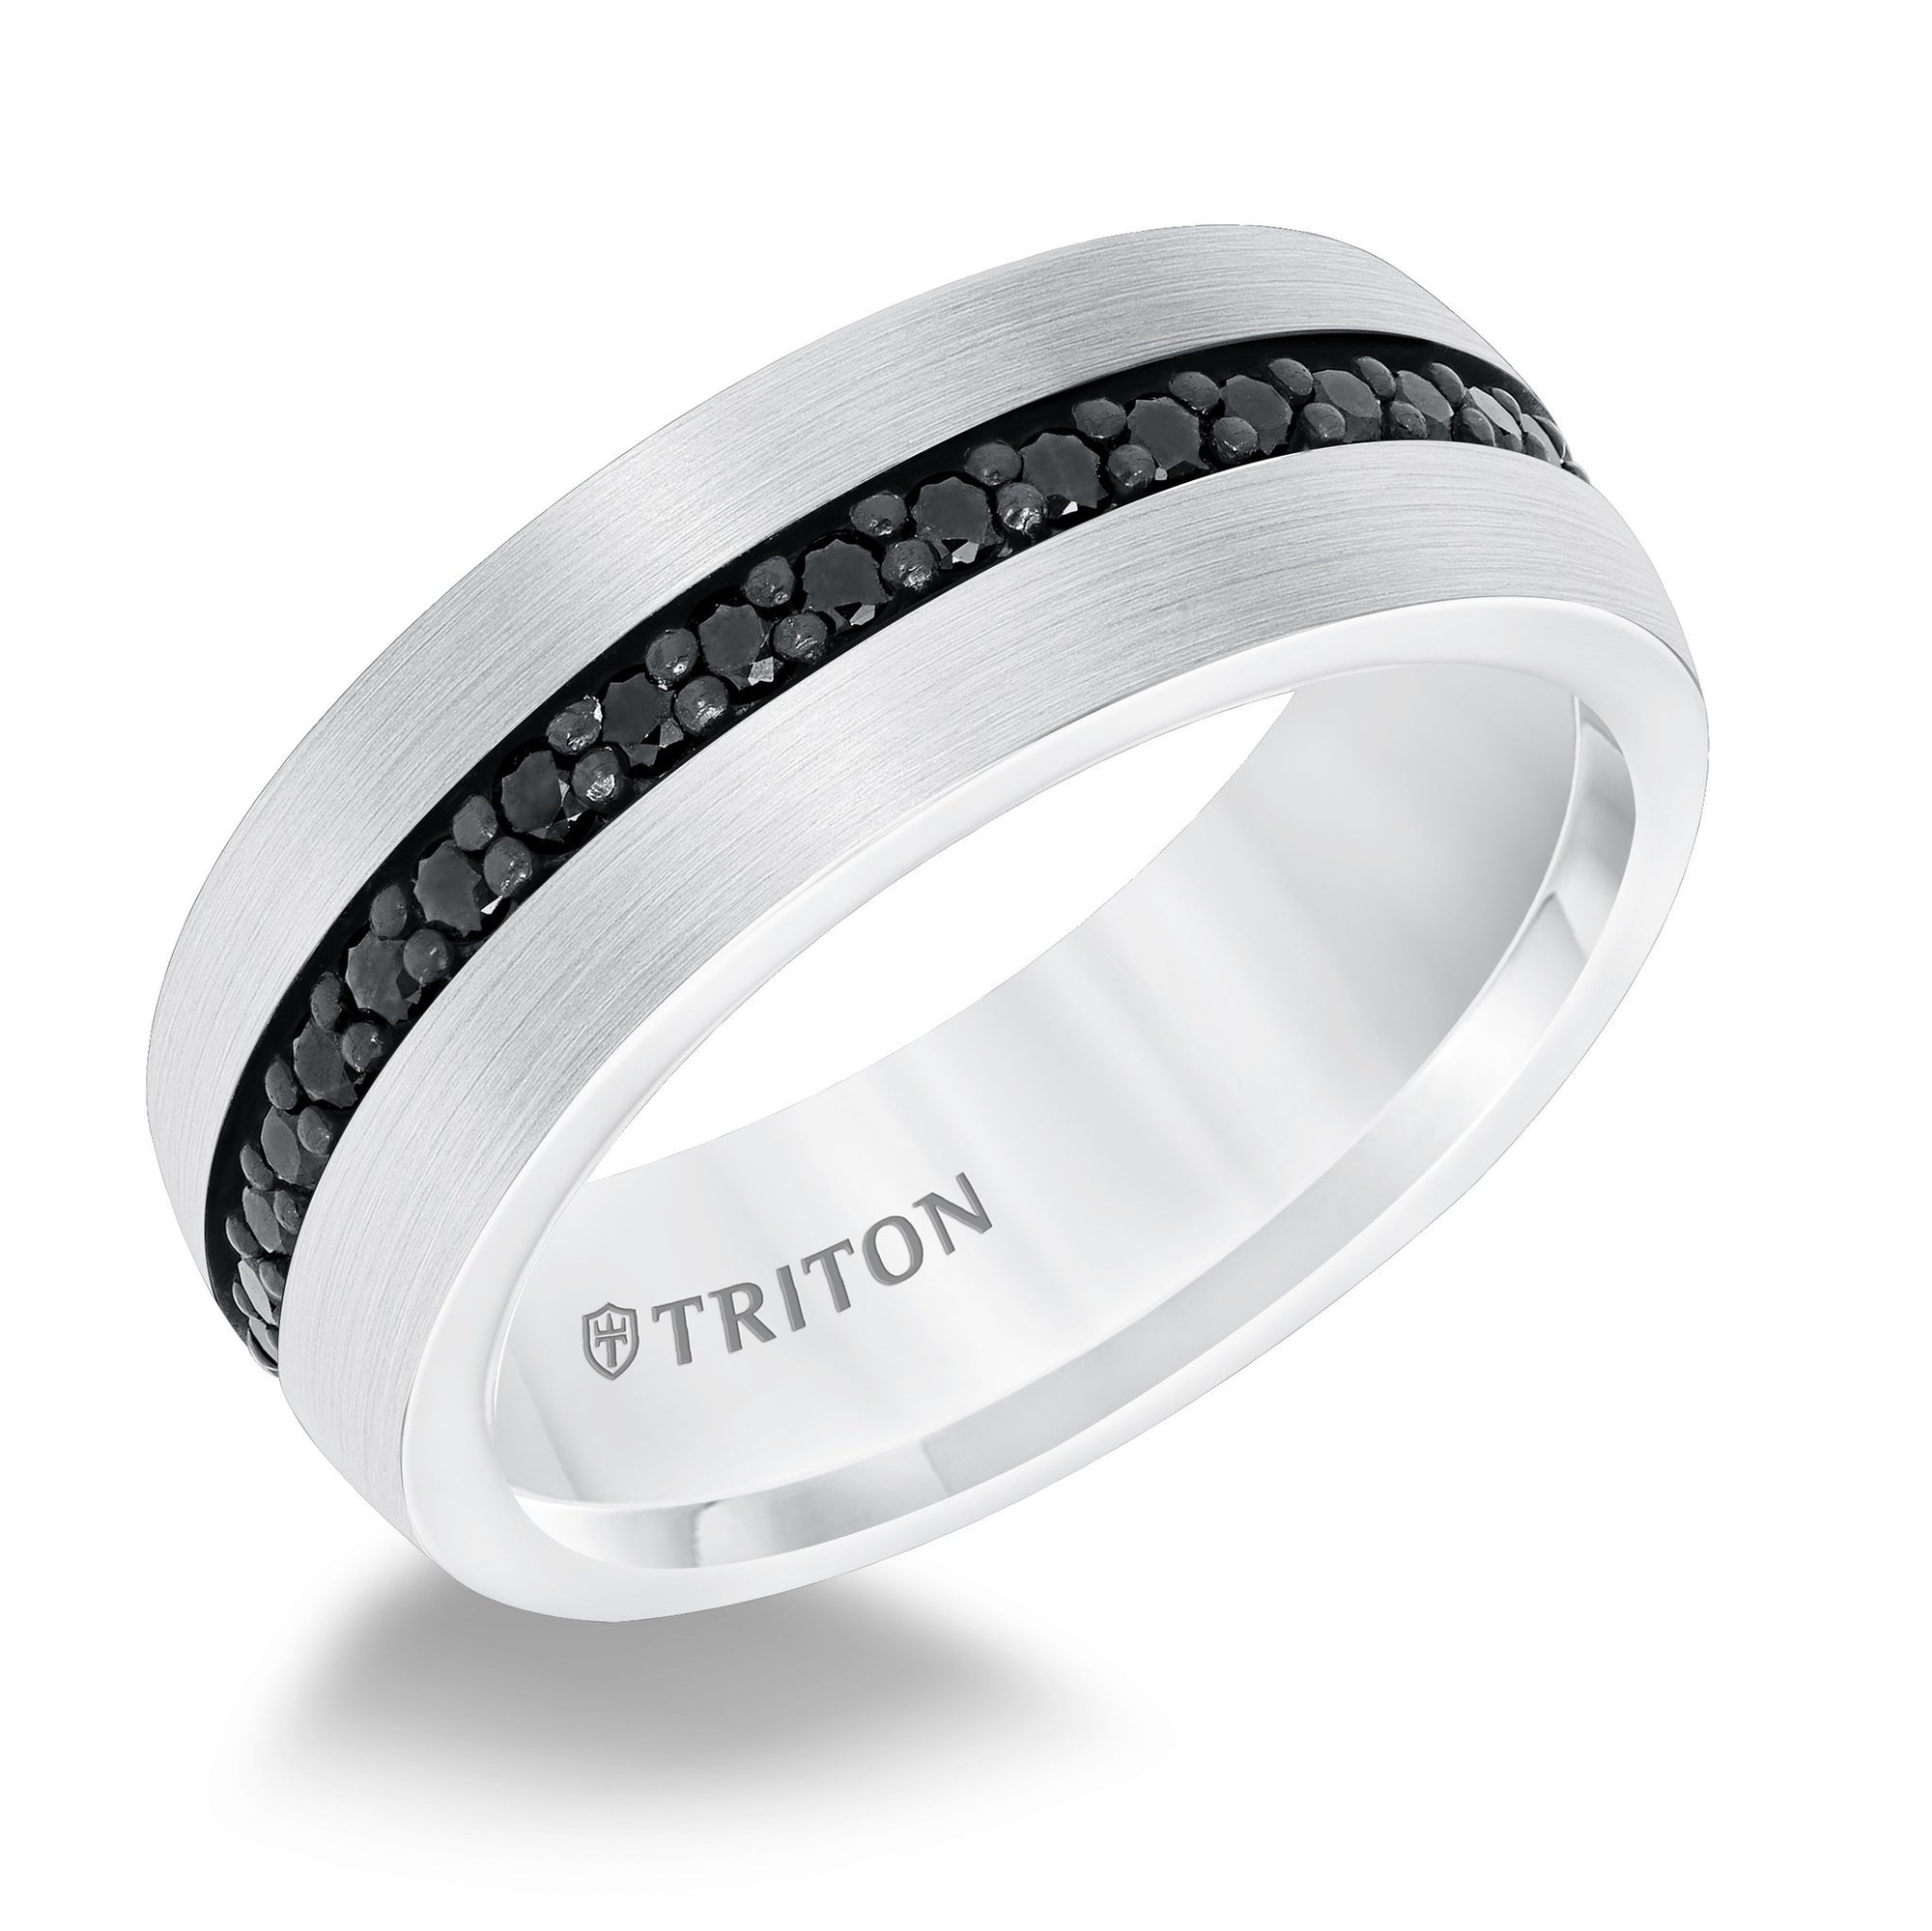 rings ring ceramic shop band inlay bands polished triton dark florentine wedding tungsten gray